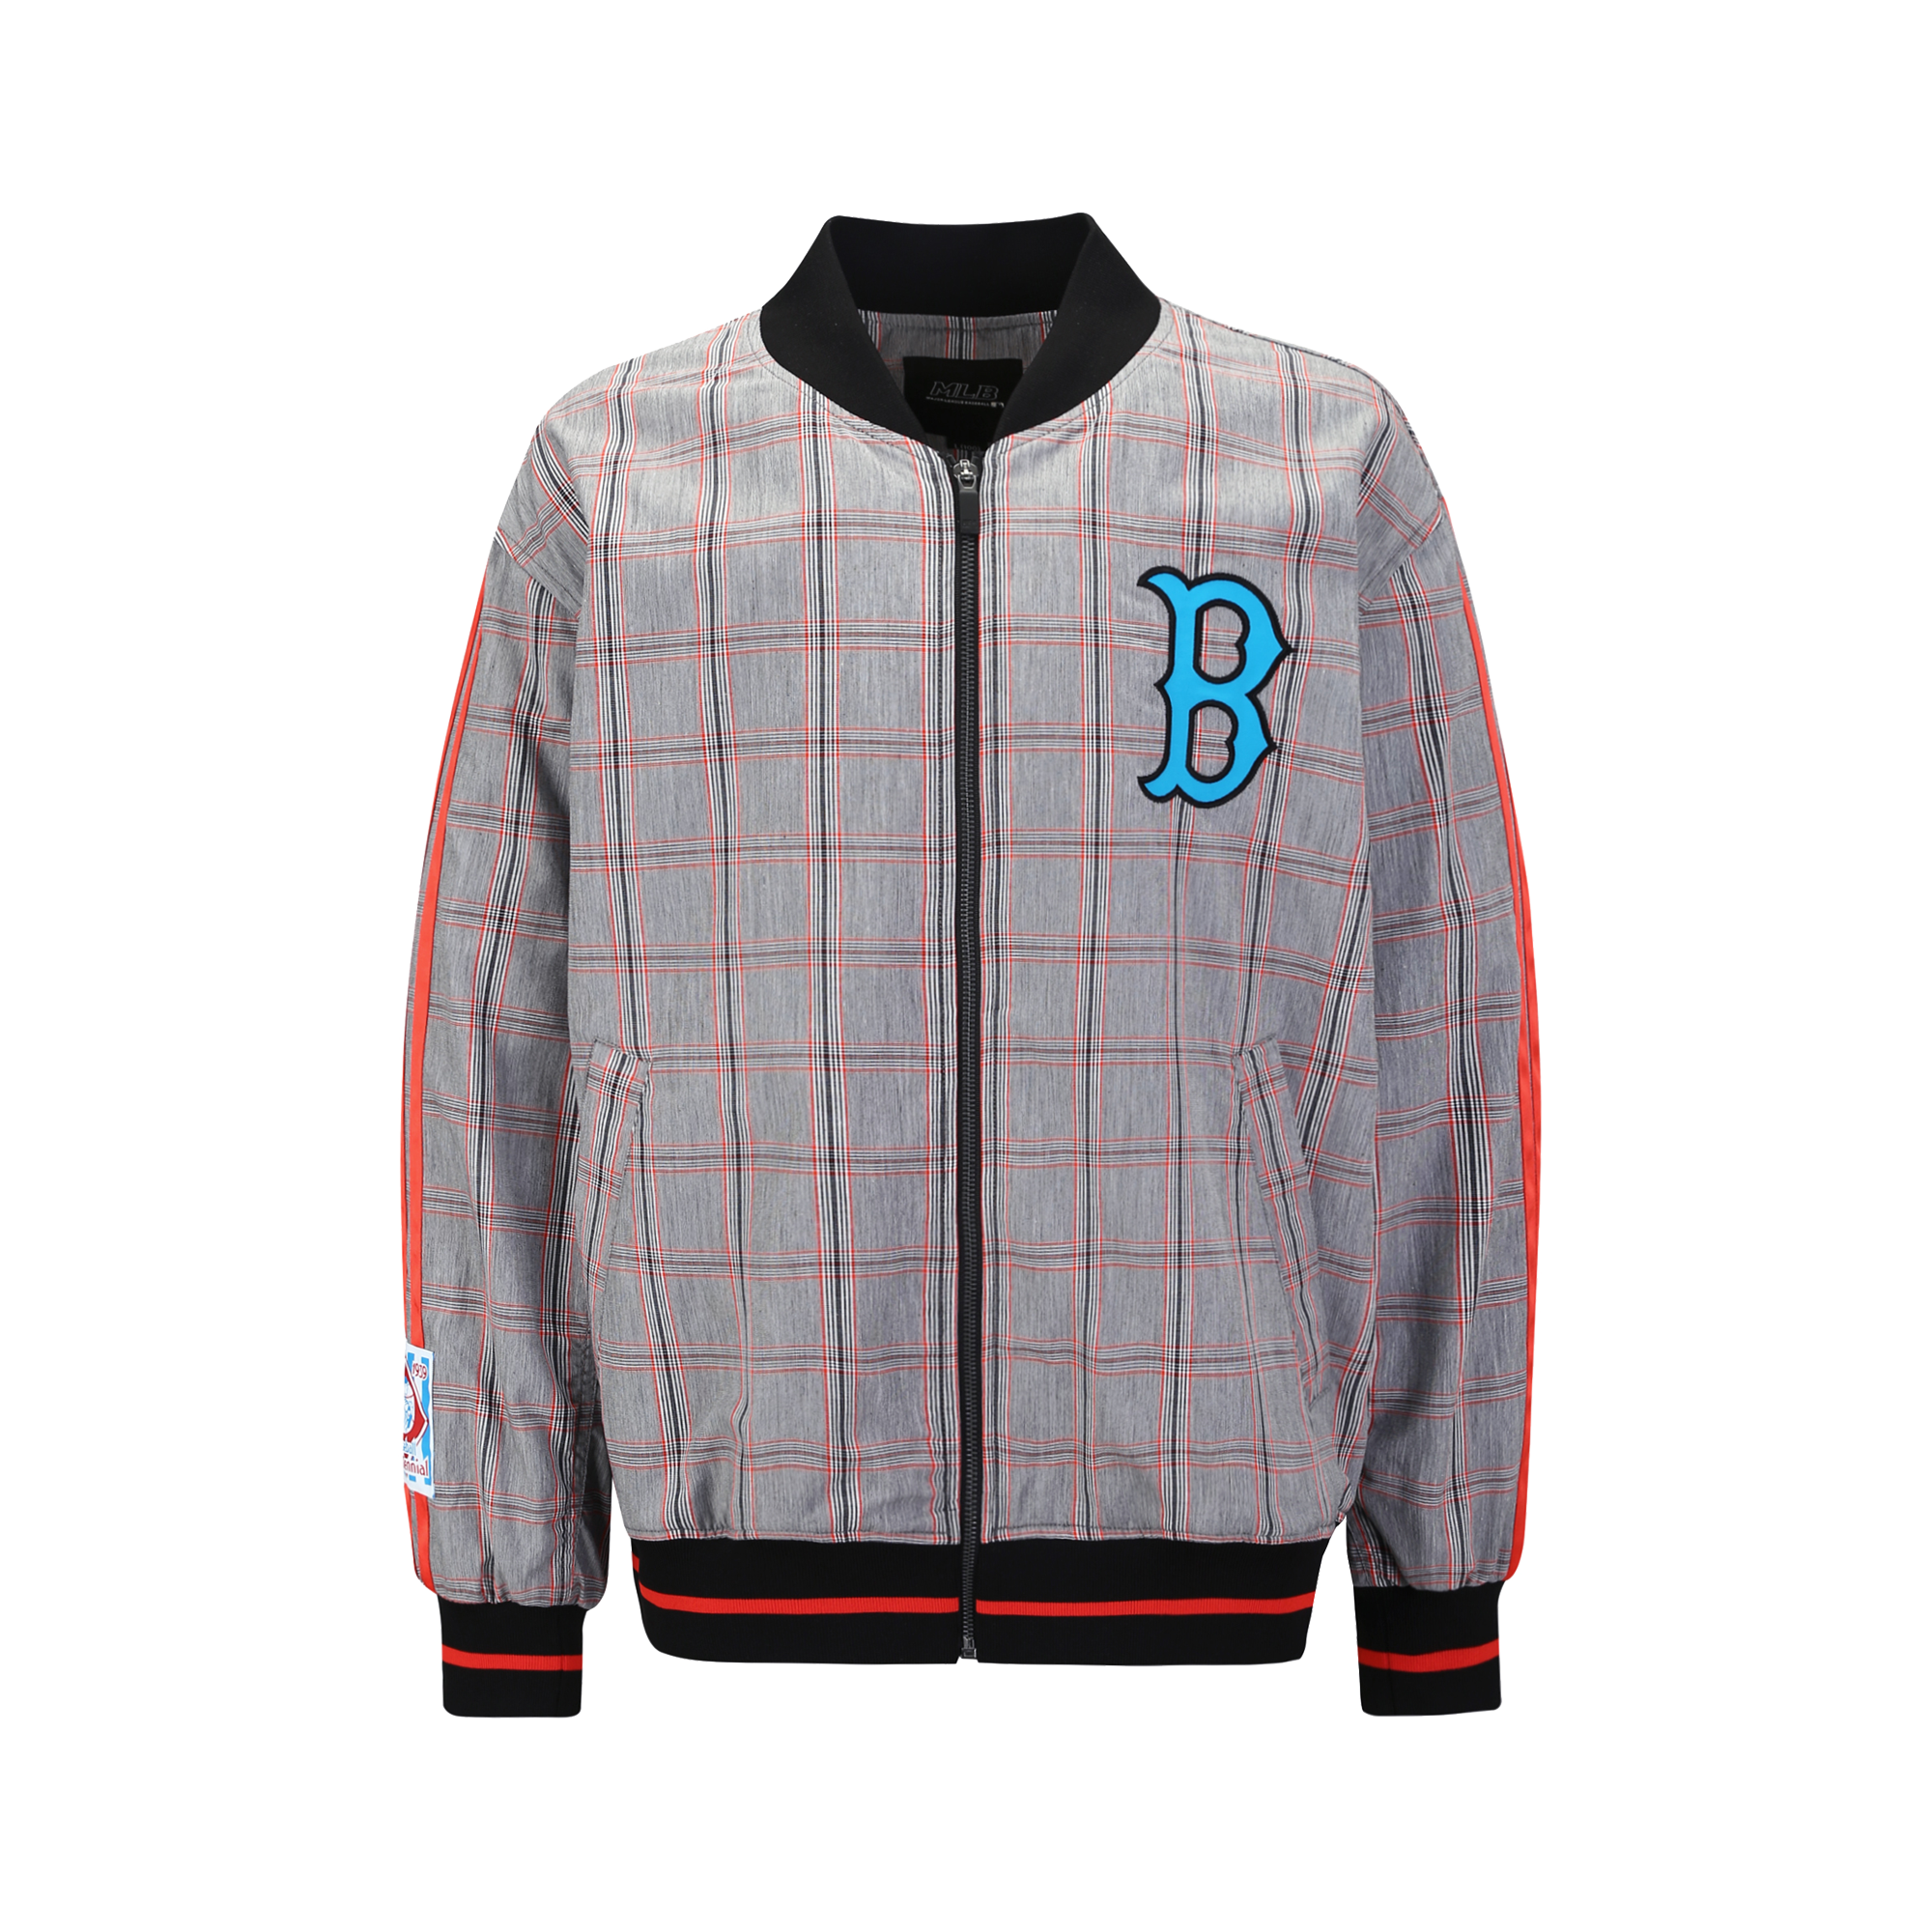 BOSTON RED SOX COOPERS TAPING CHECK BASEBALL JUMPER